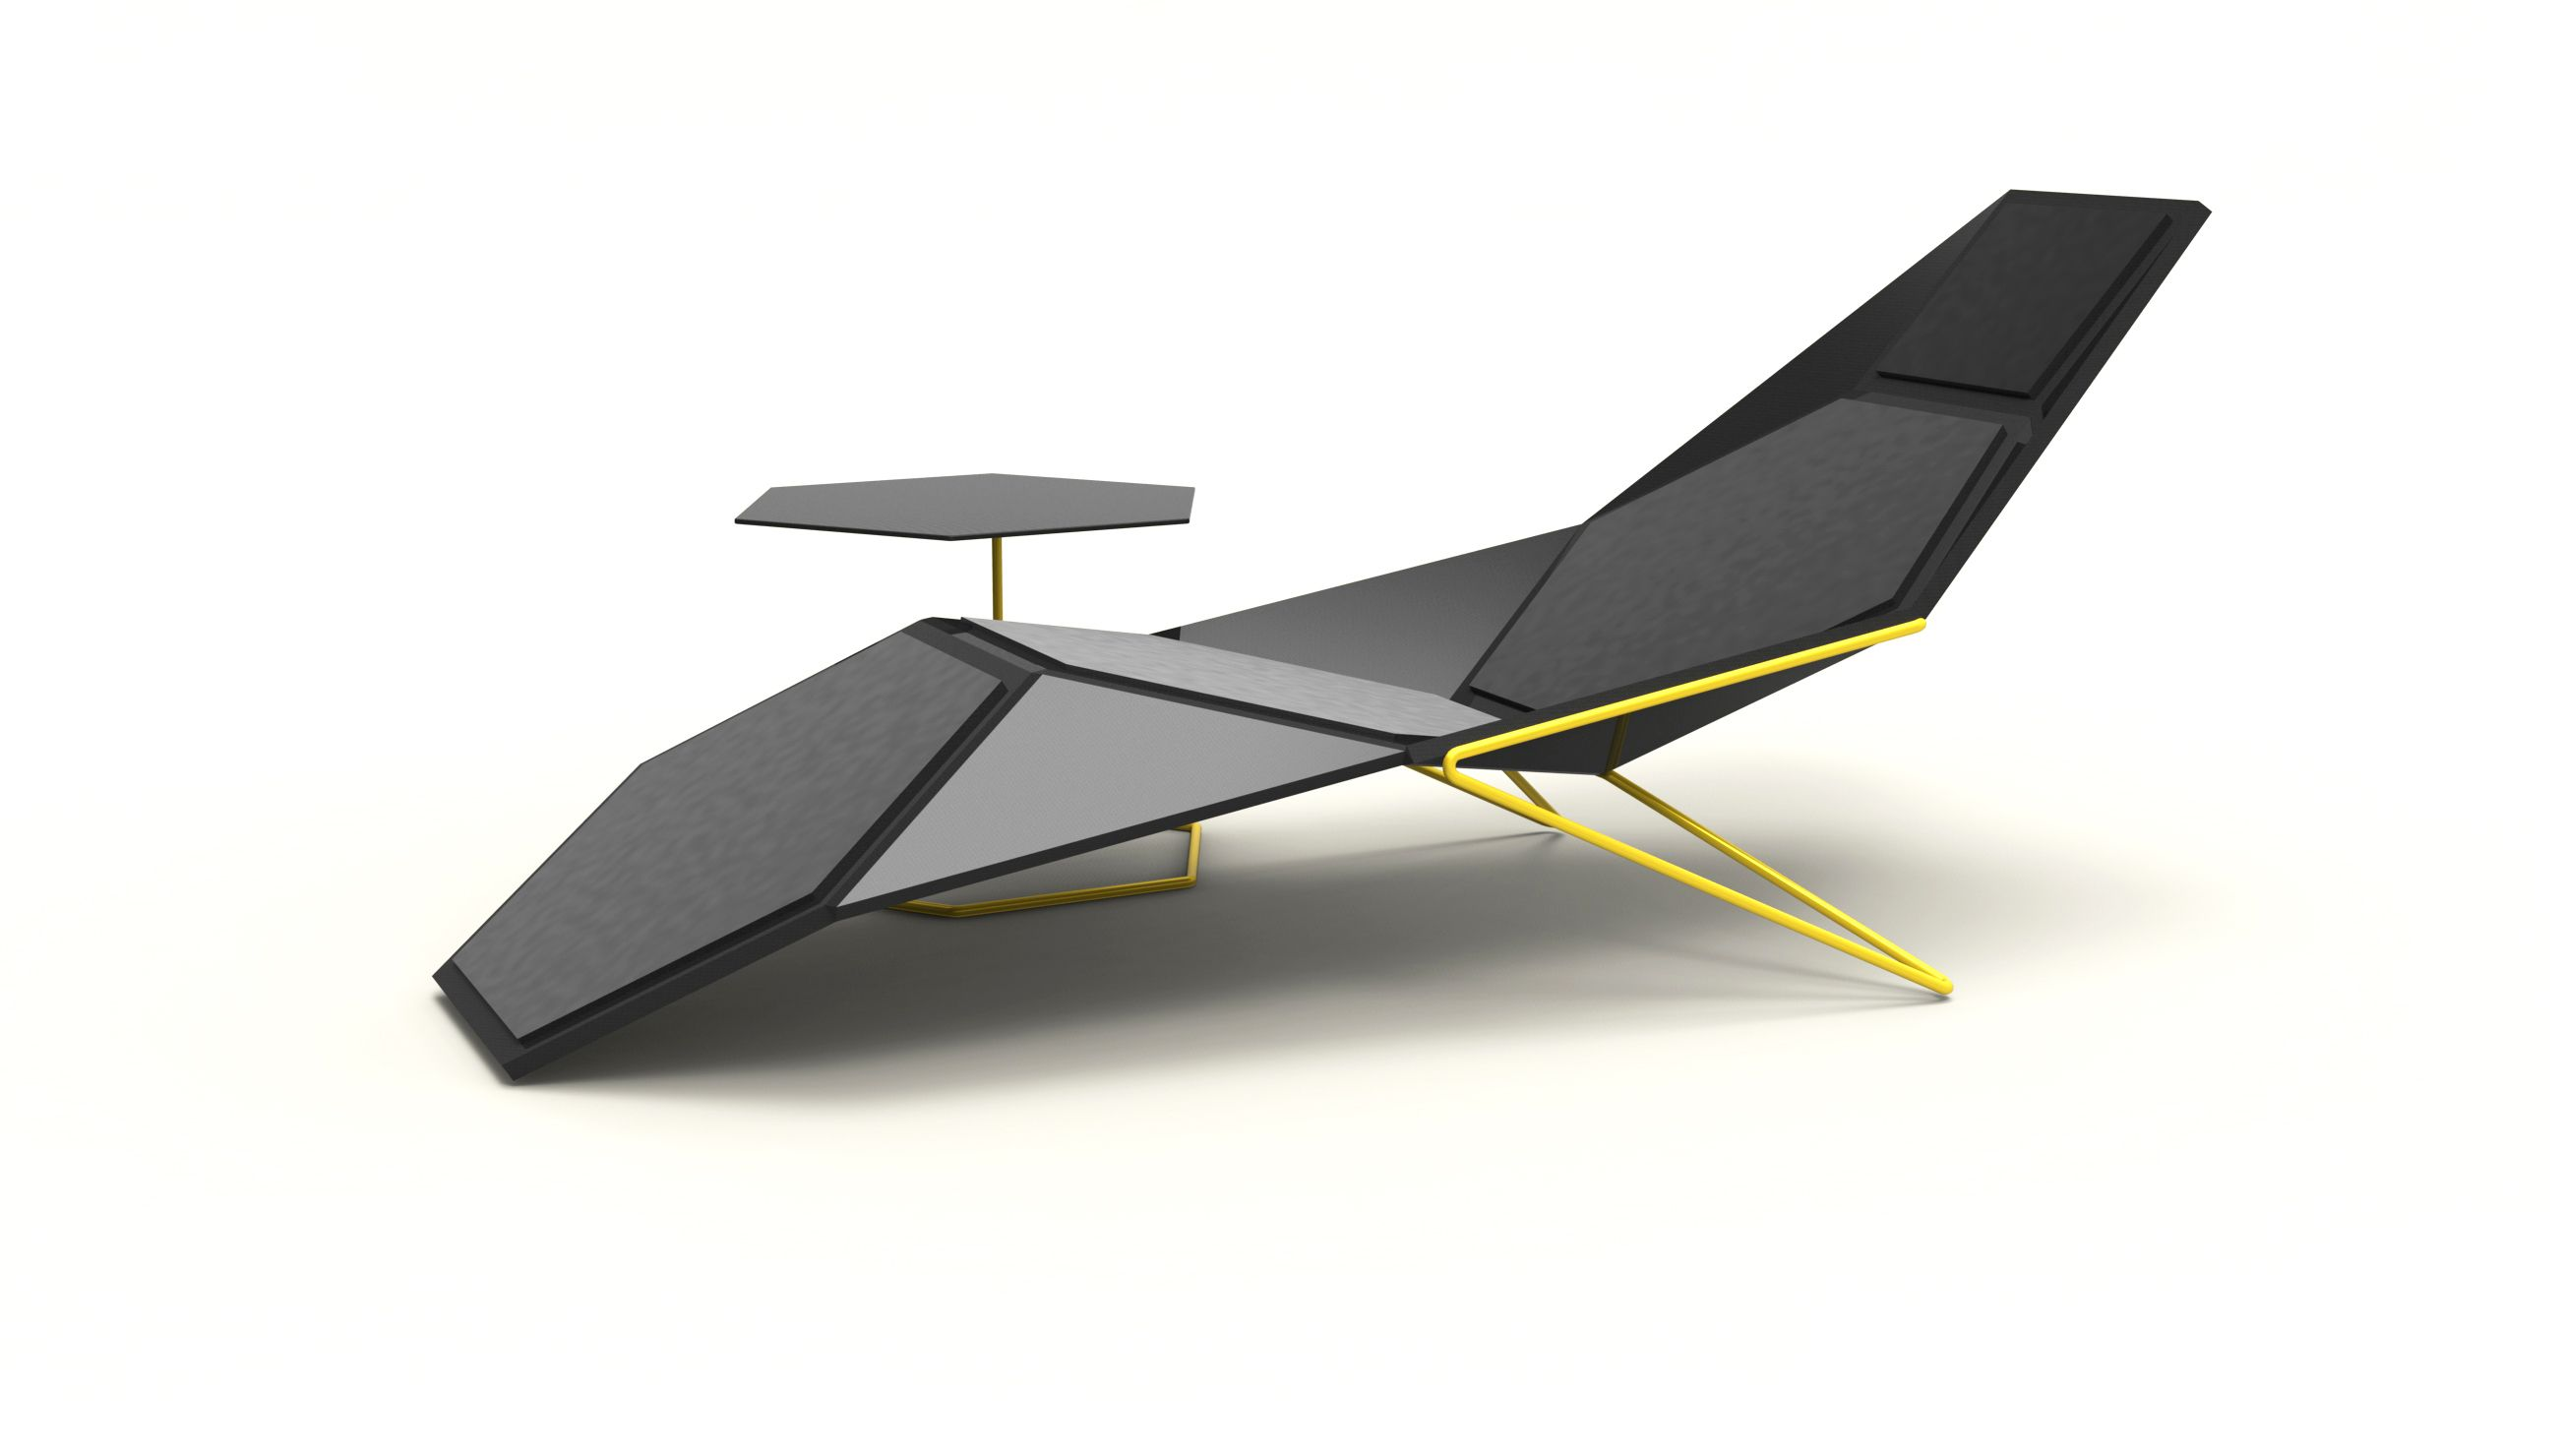 futuristic furniture design. Best Futuristic Furniture Design Concept 4339 Affordable Sdn Bhd .. R